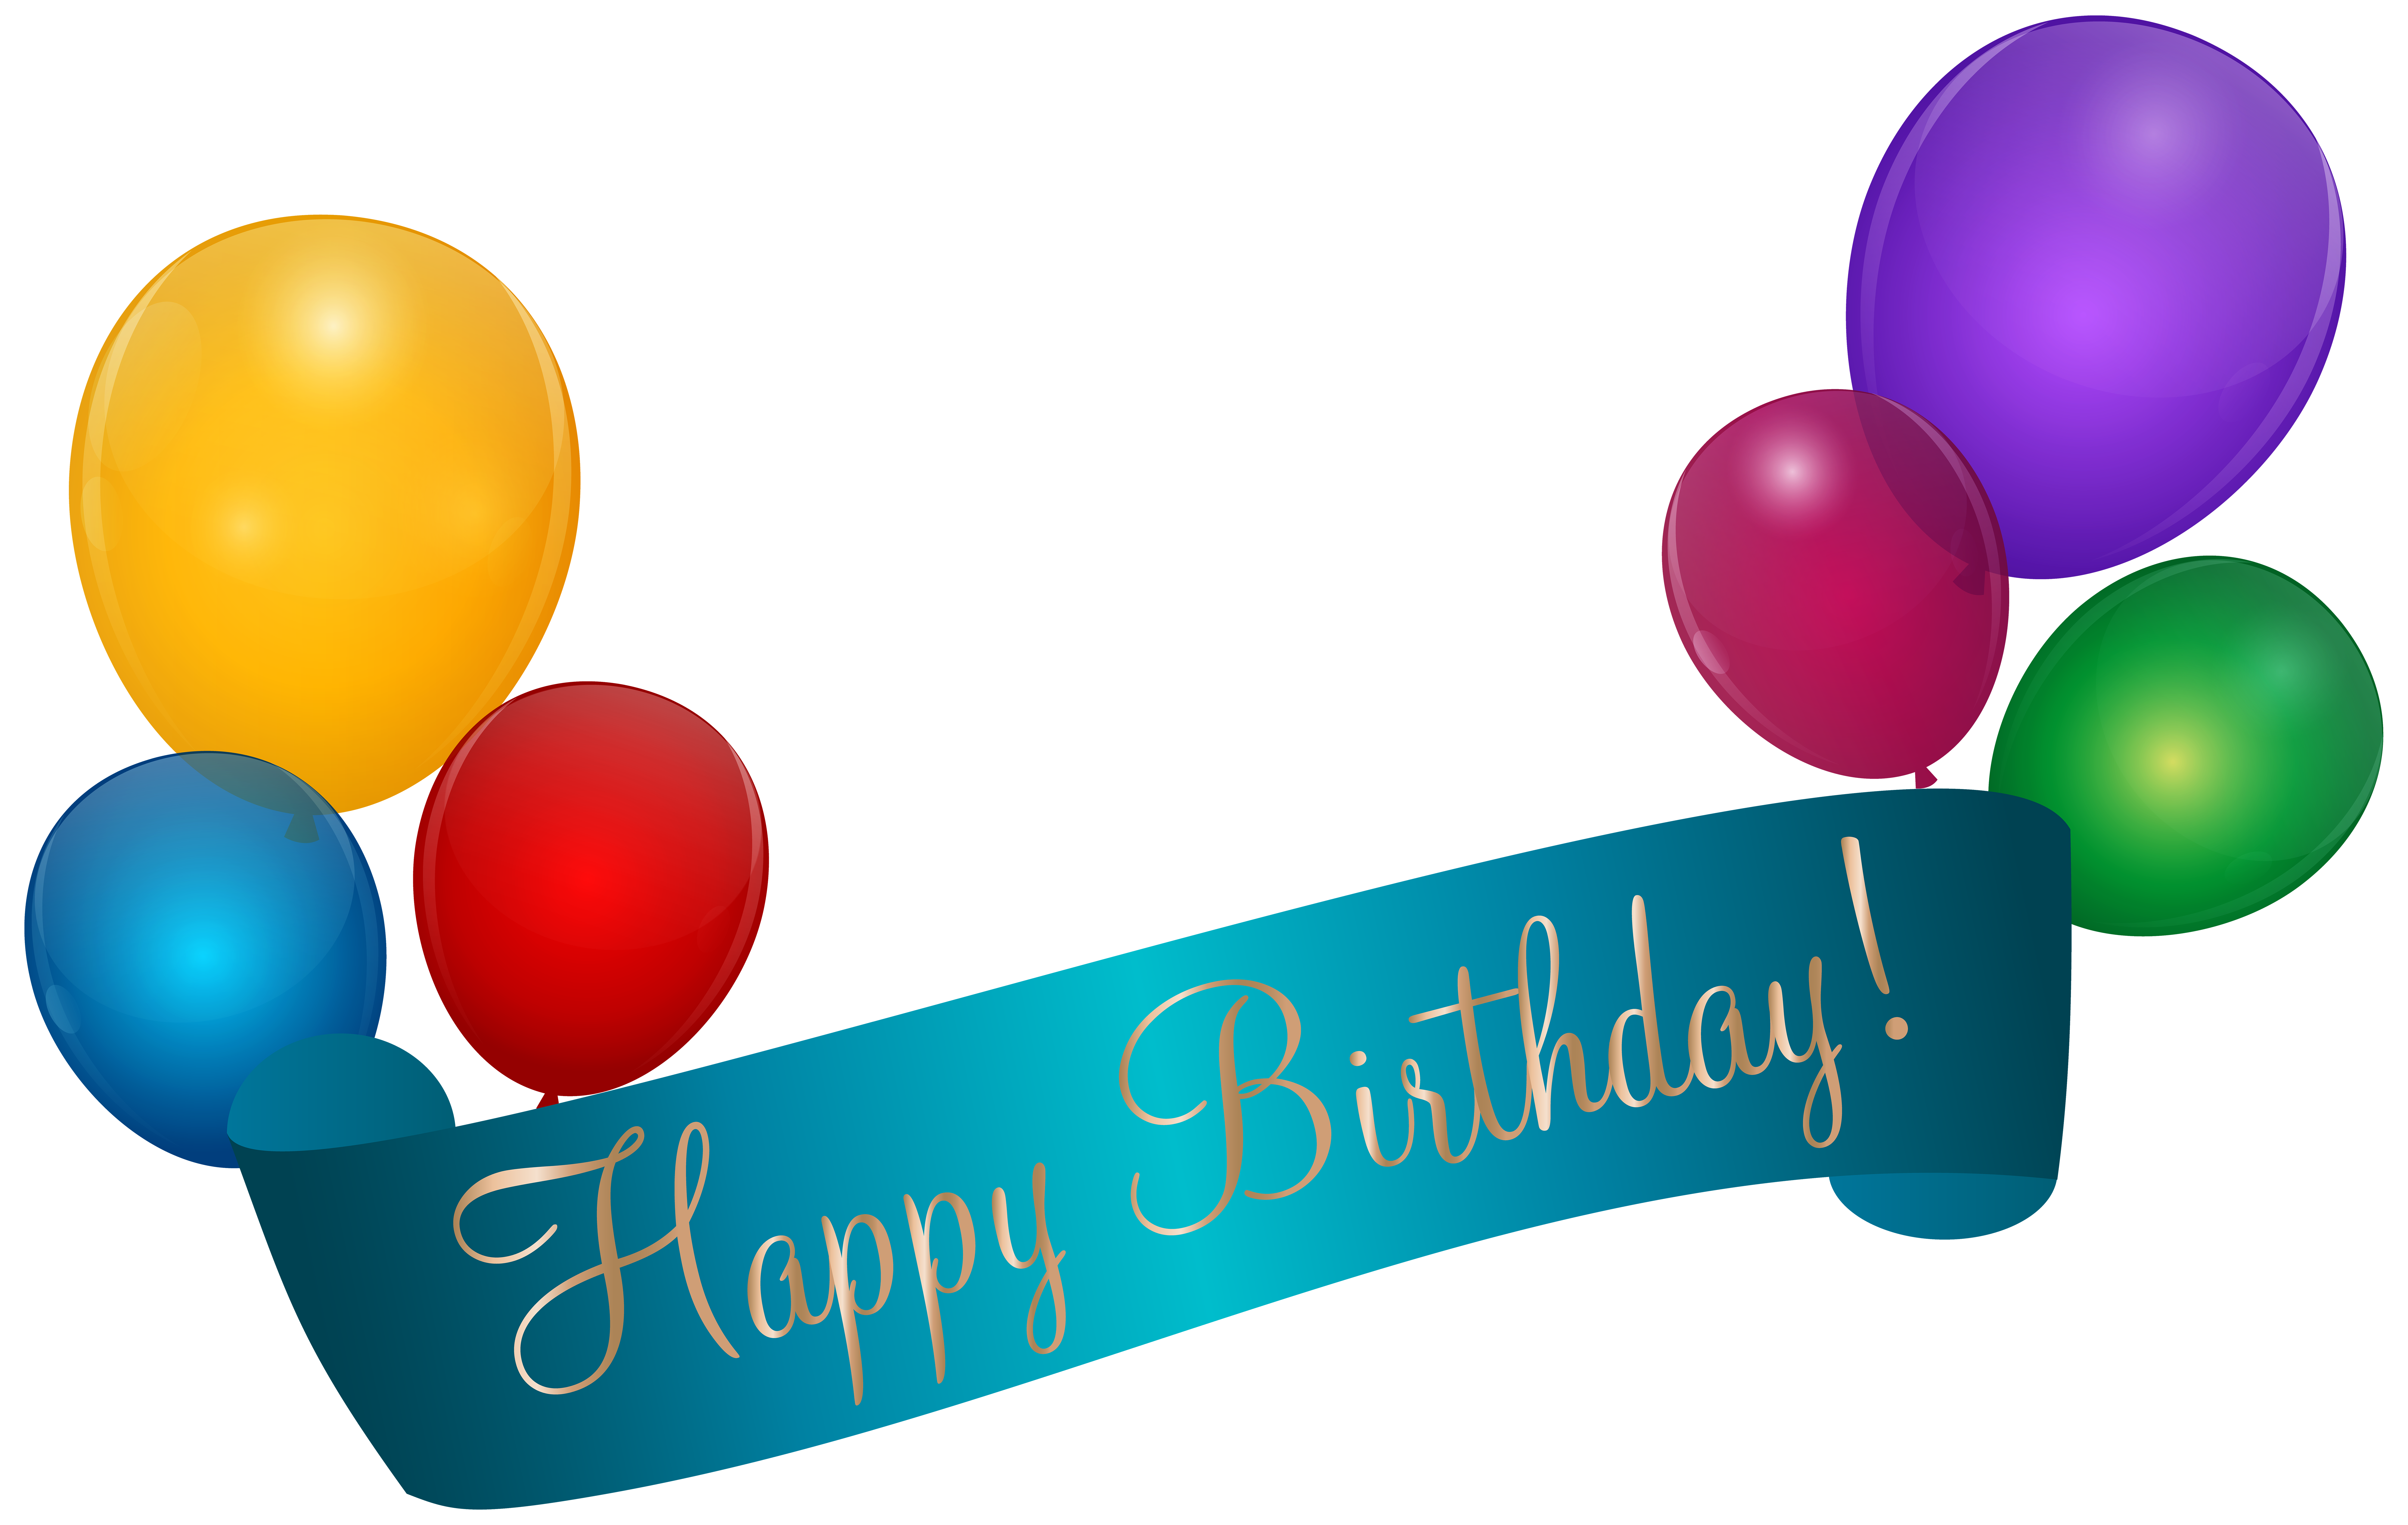 Happy birthday banner clip art free clipart images gallery for free.